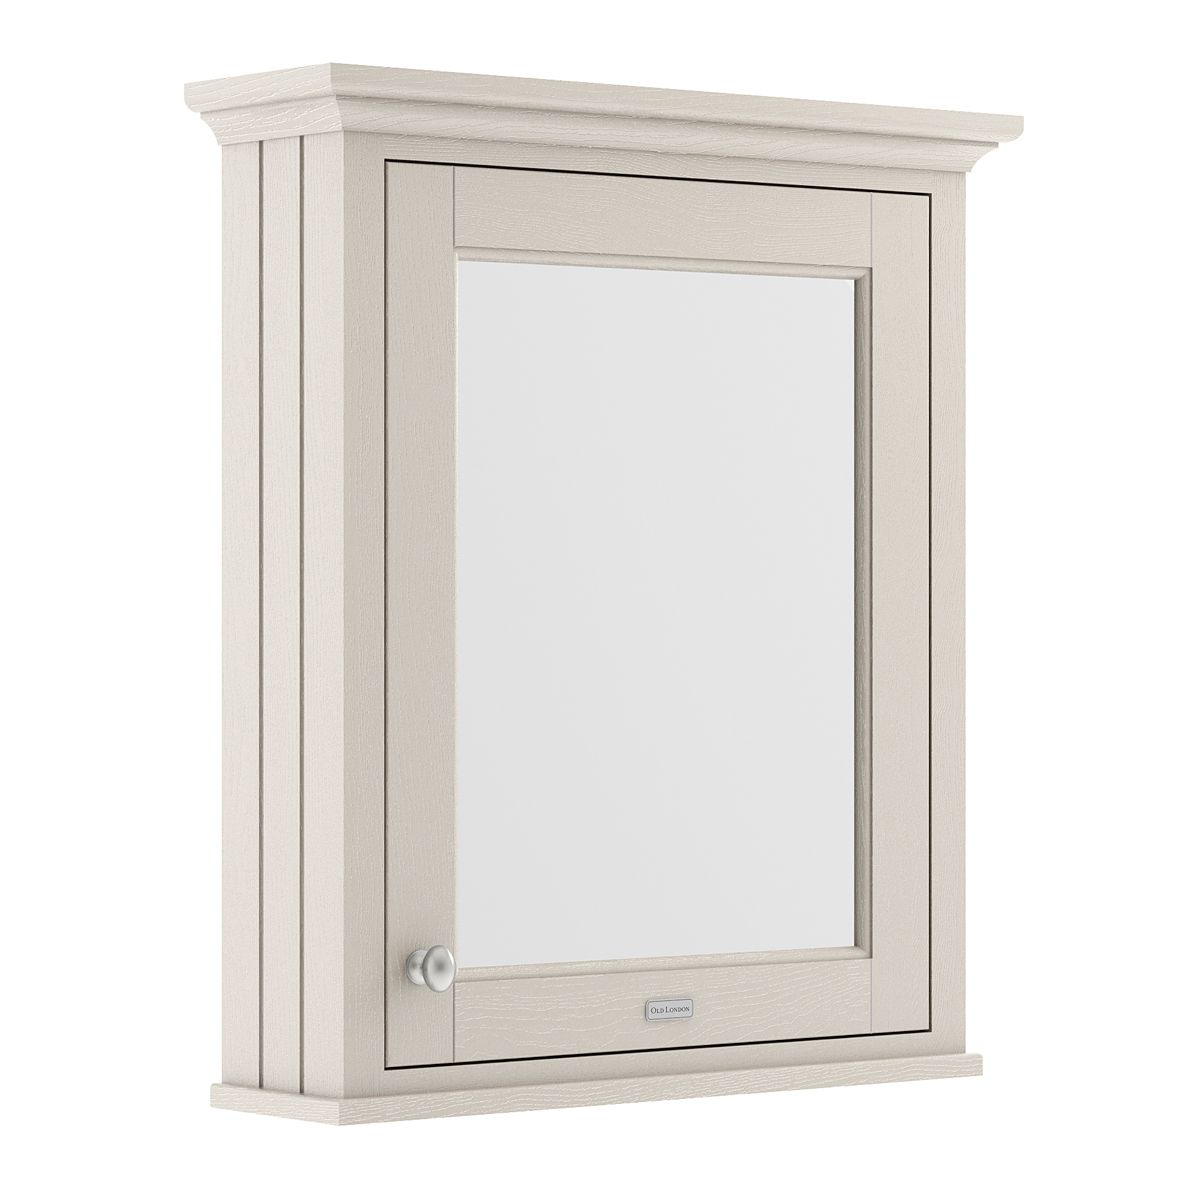 Old London Timeless Sand Mirror Cabinet 600mm